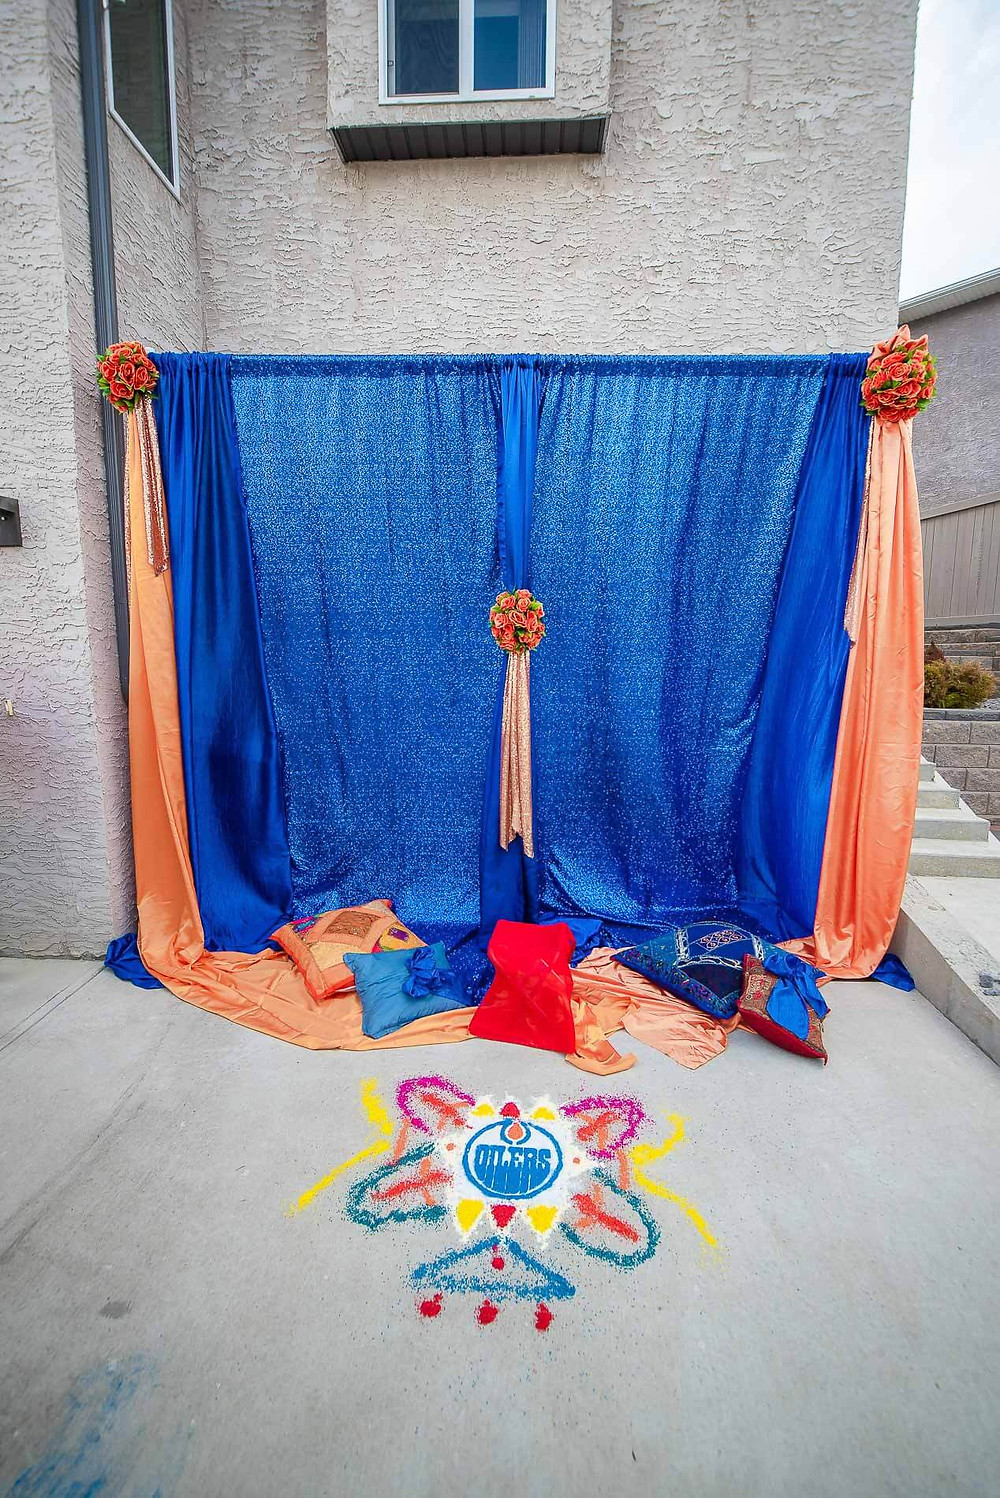 full set up for grooms Maiyan ceremony with royal blue curtains and peach trim with bouquet of flowers in the middle and edmonton oilers rangoli on the cement floor